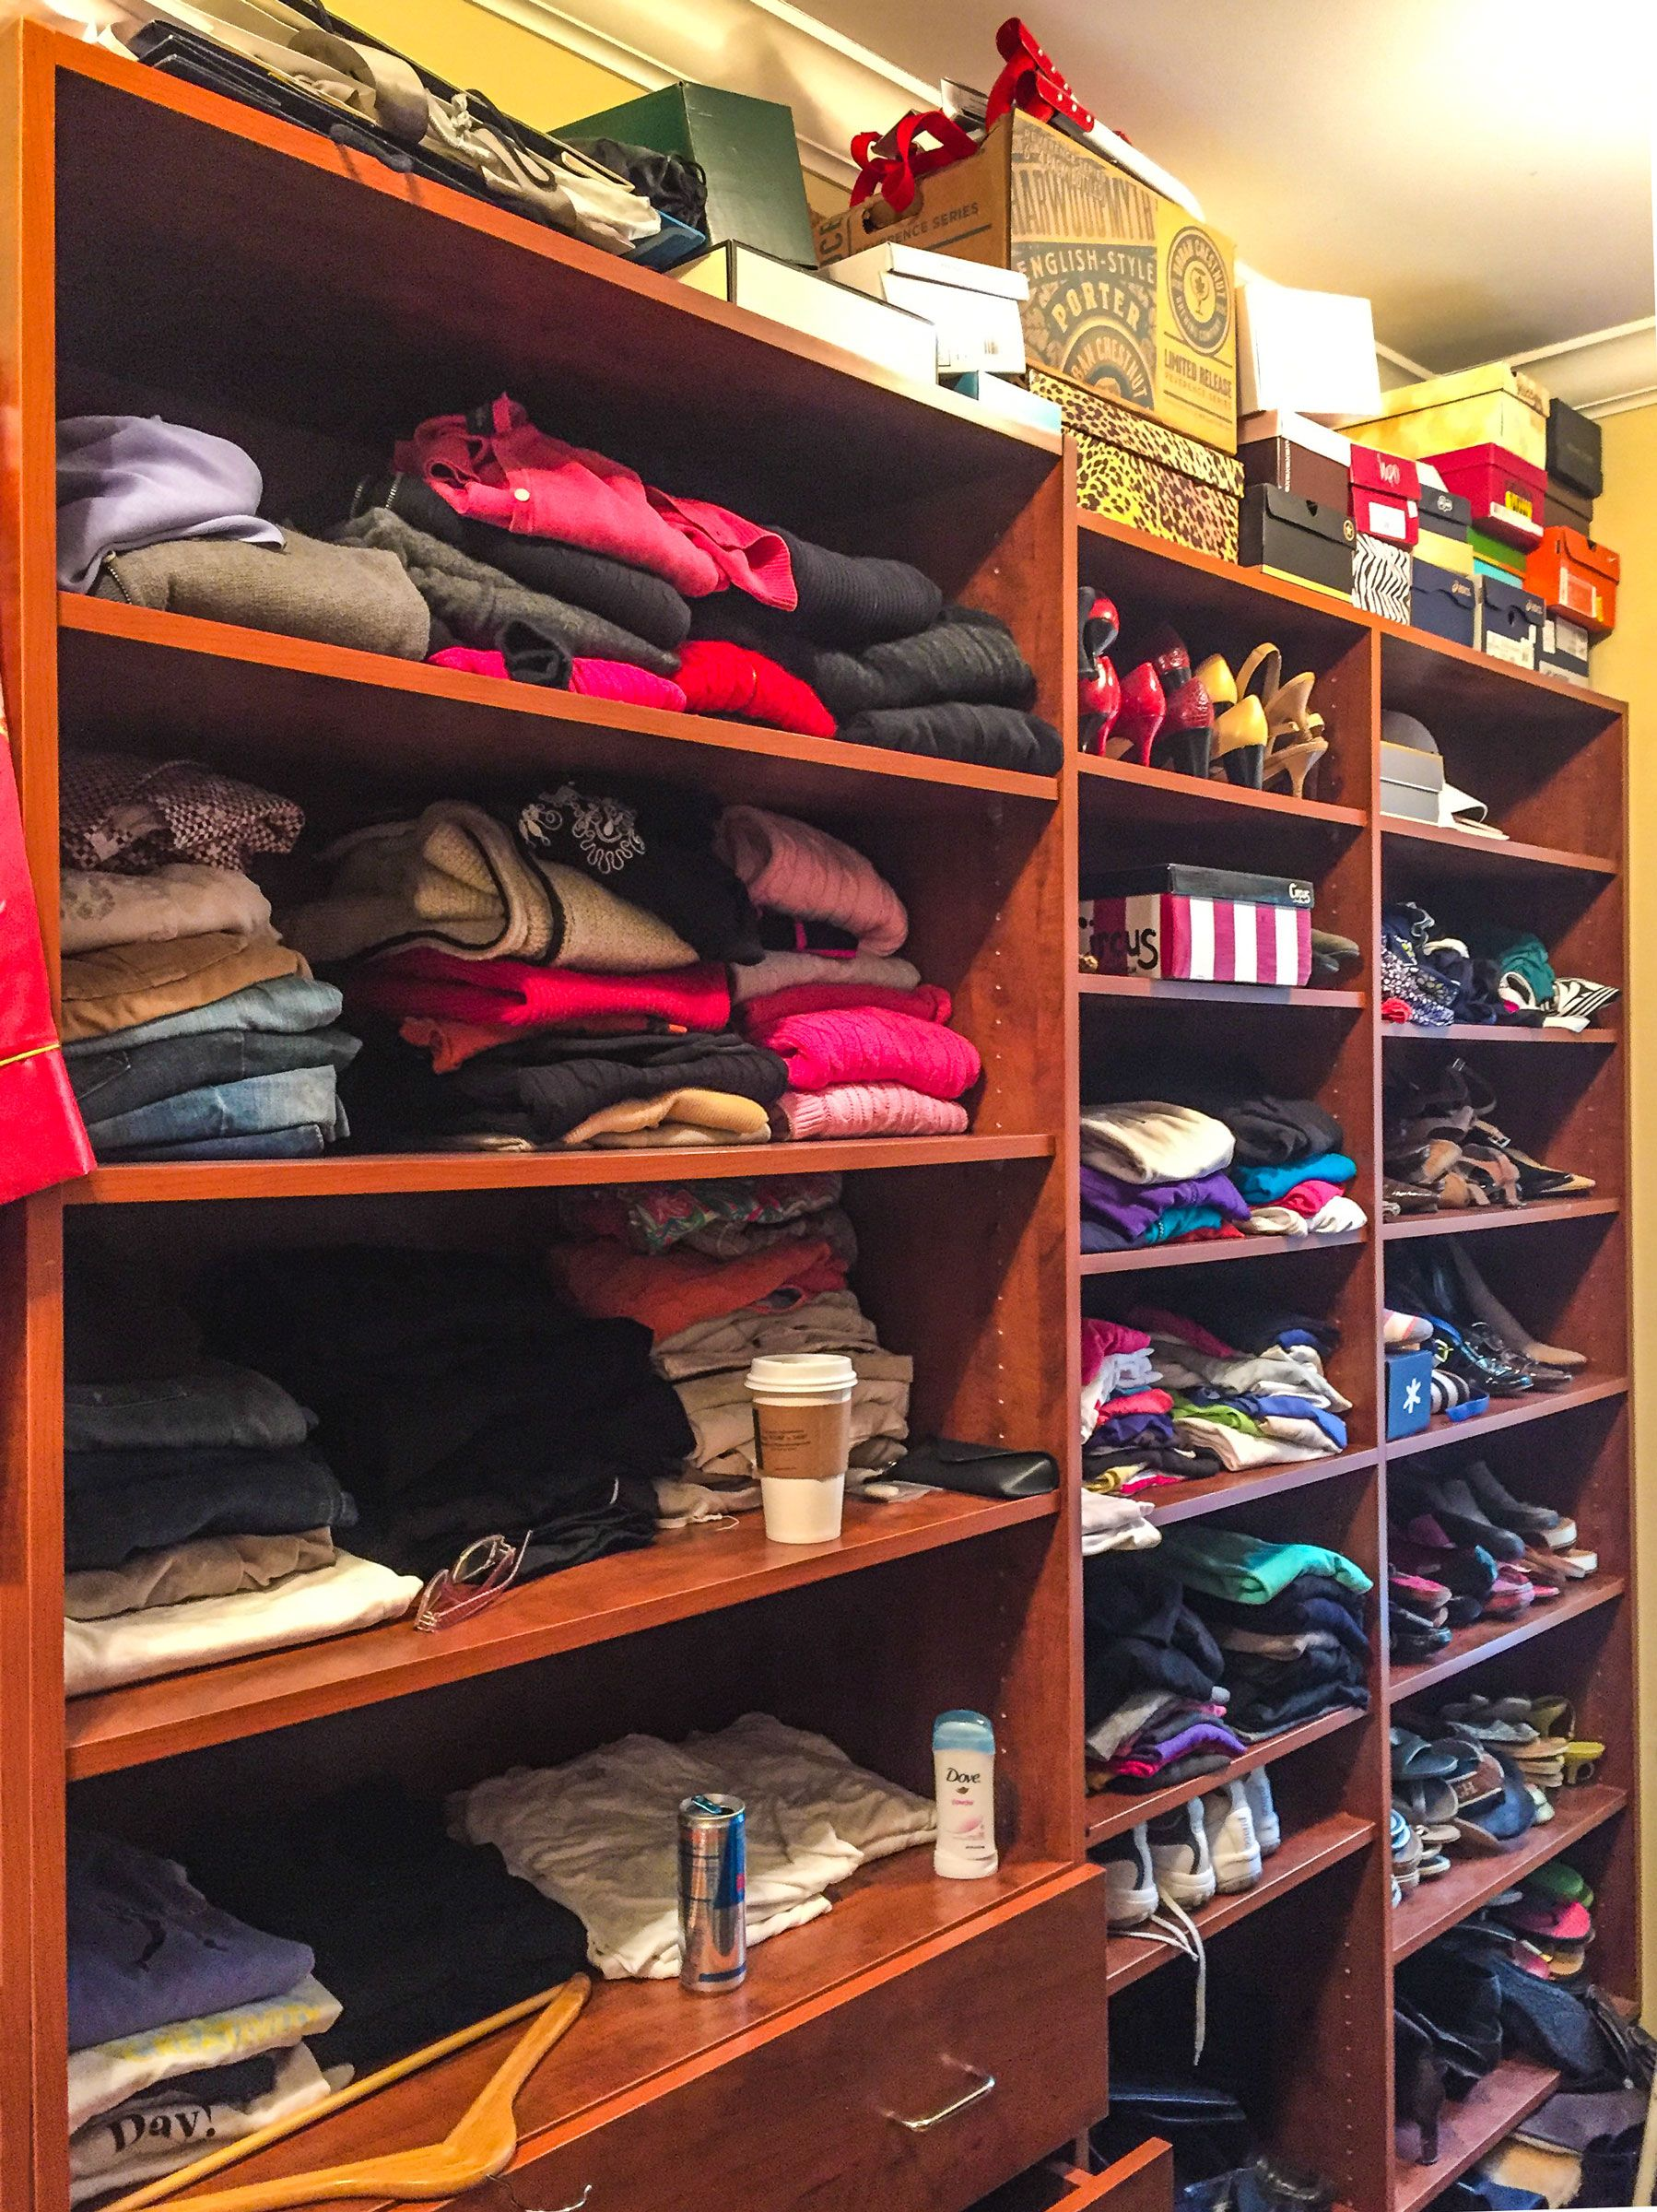 This Is The Left Side Of Closet Before Decluttering Client Had Piles